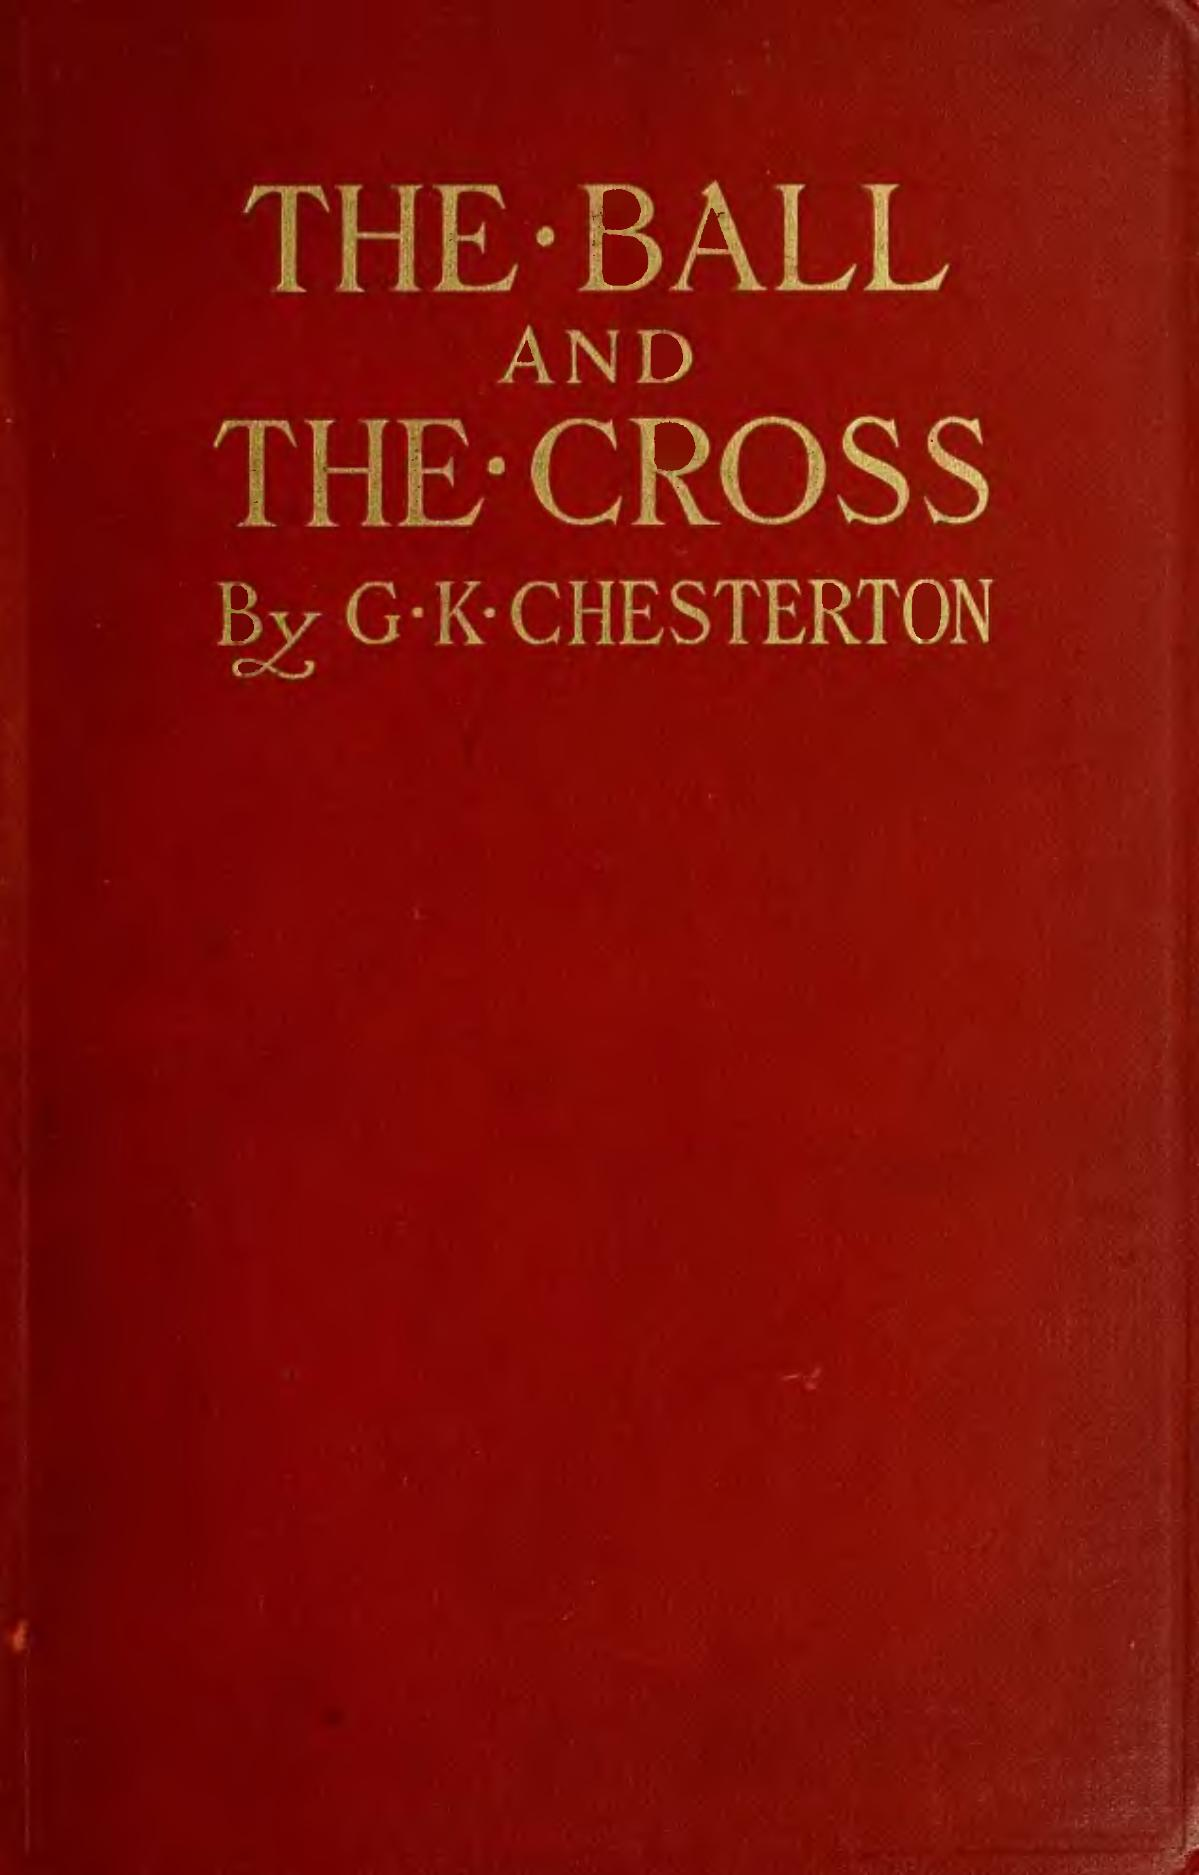 The Ball and the Cross - Wikipedia